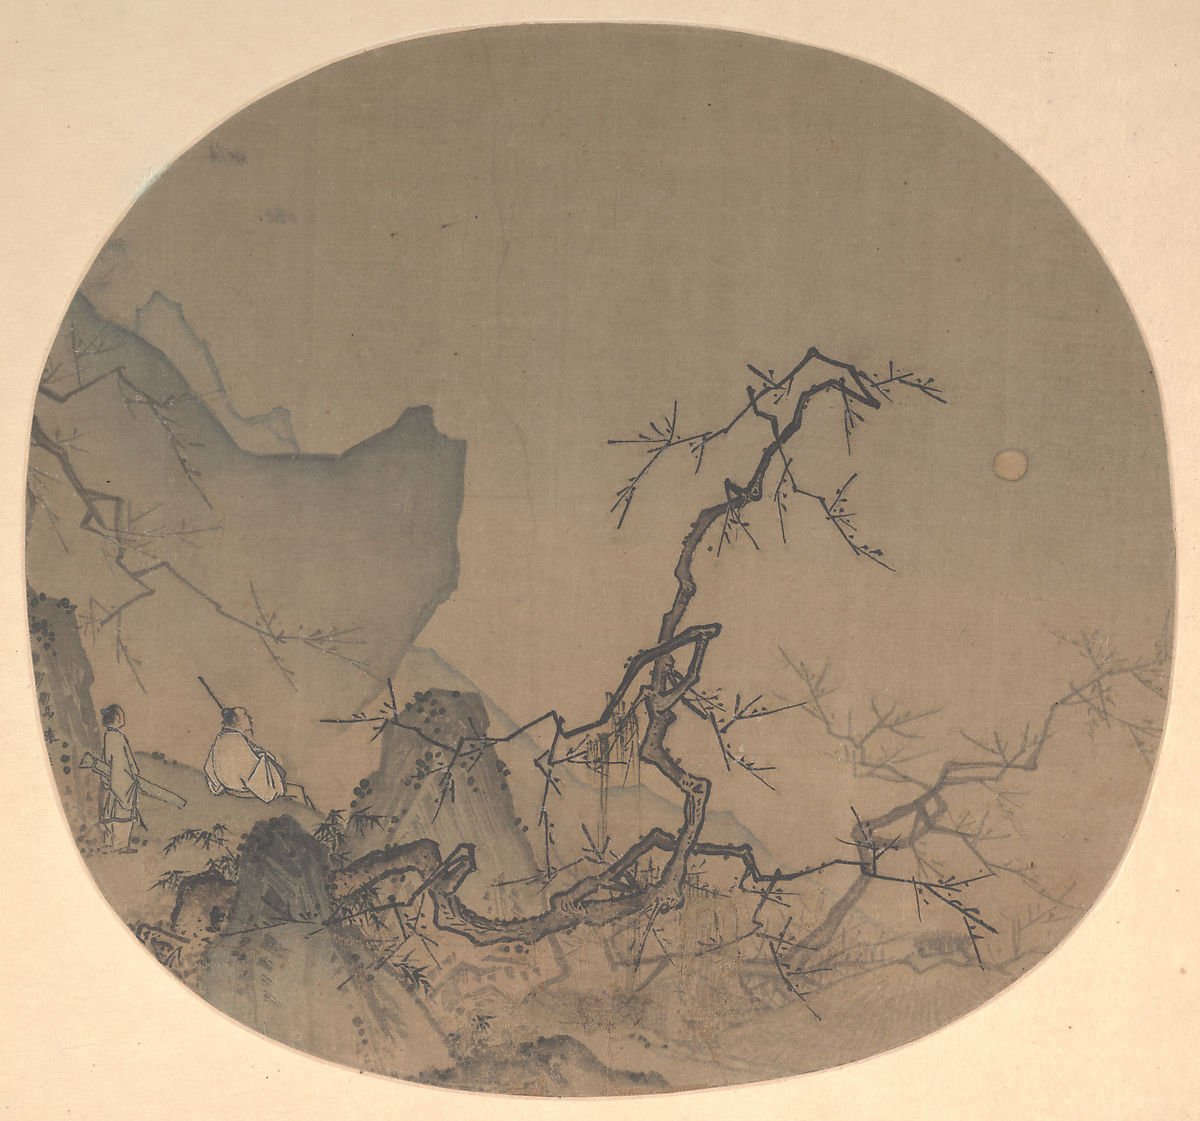 Viewing Plum Blossoms By Moonlight Ma Yuan 19864932 Work Of Moonshine Diagram Related Keywords Suggestions